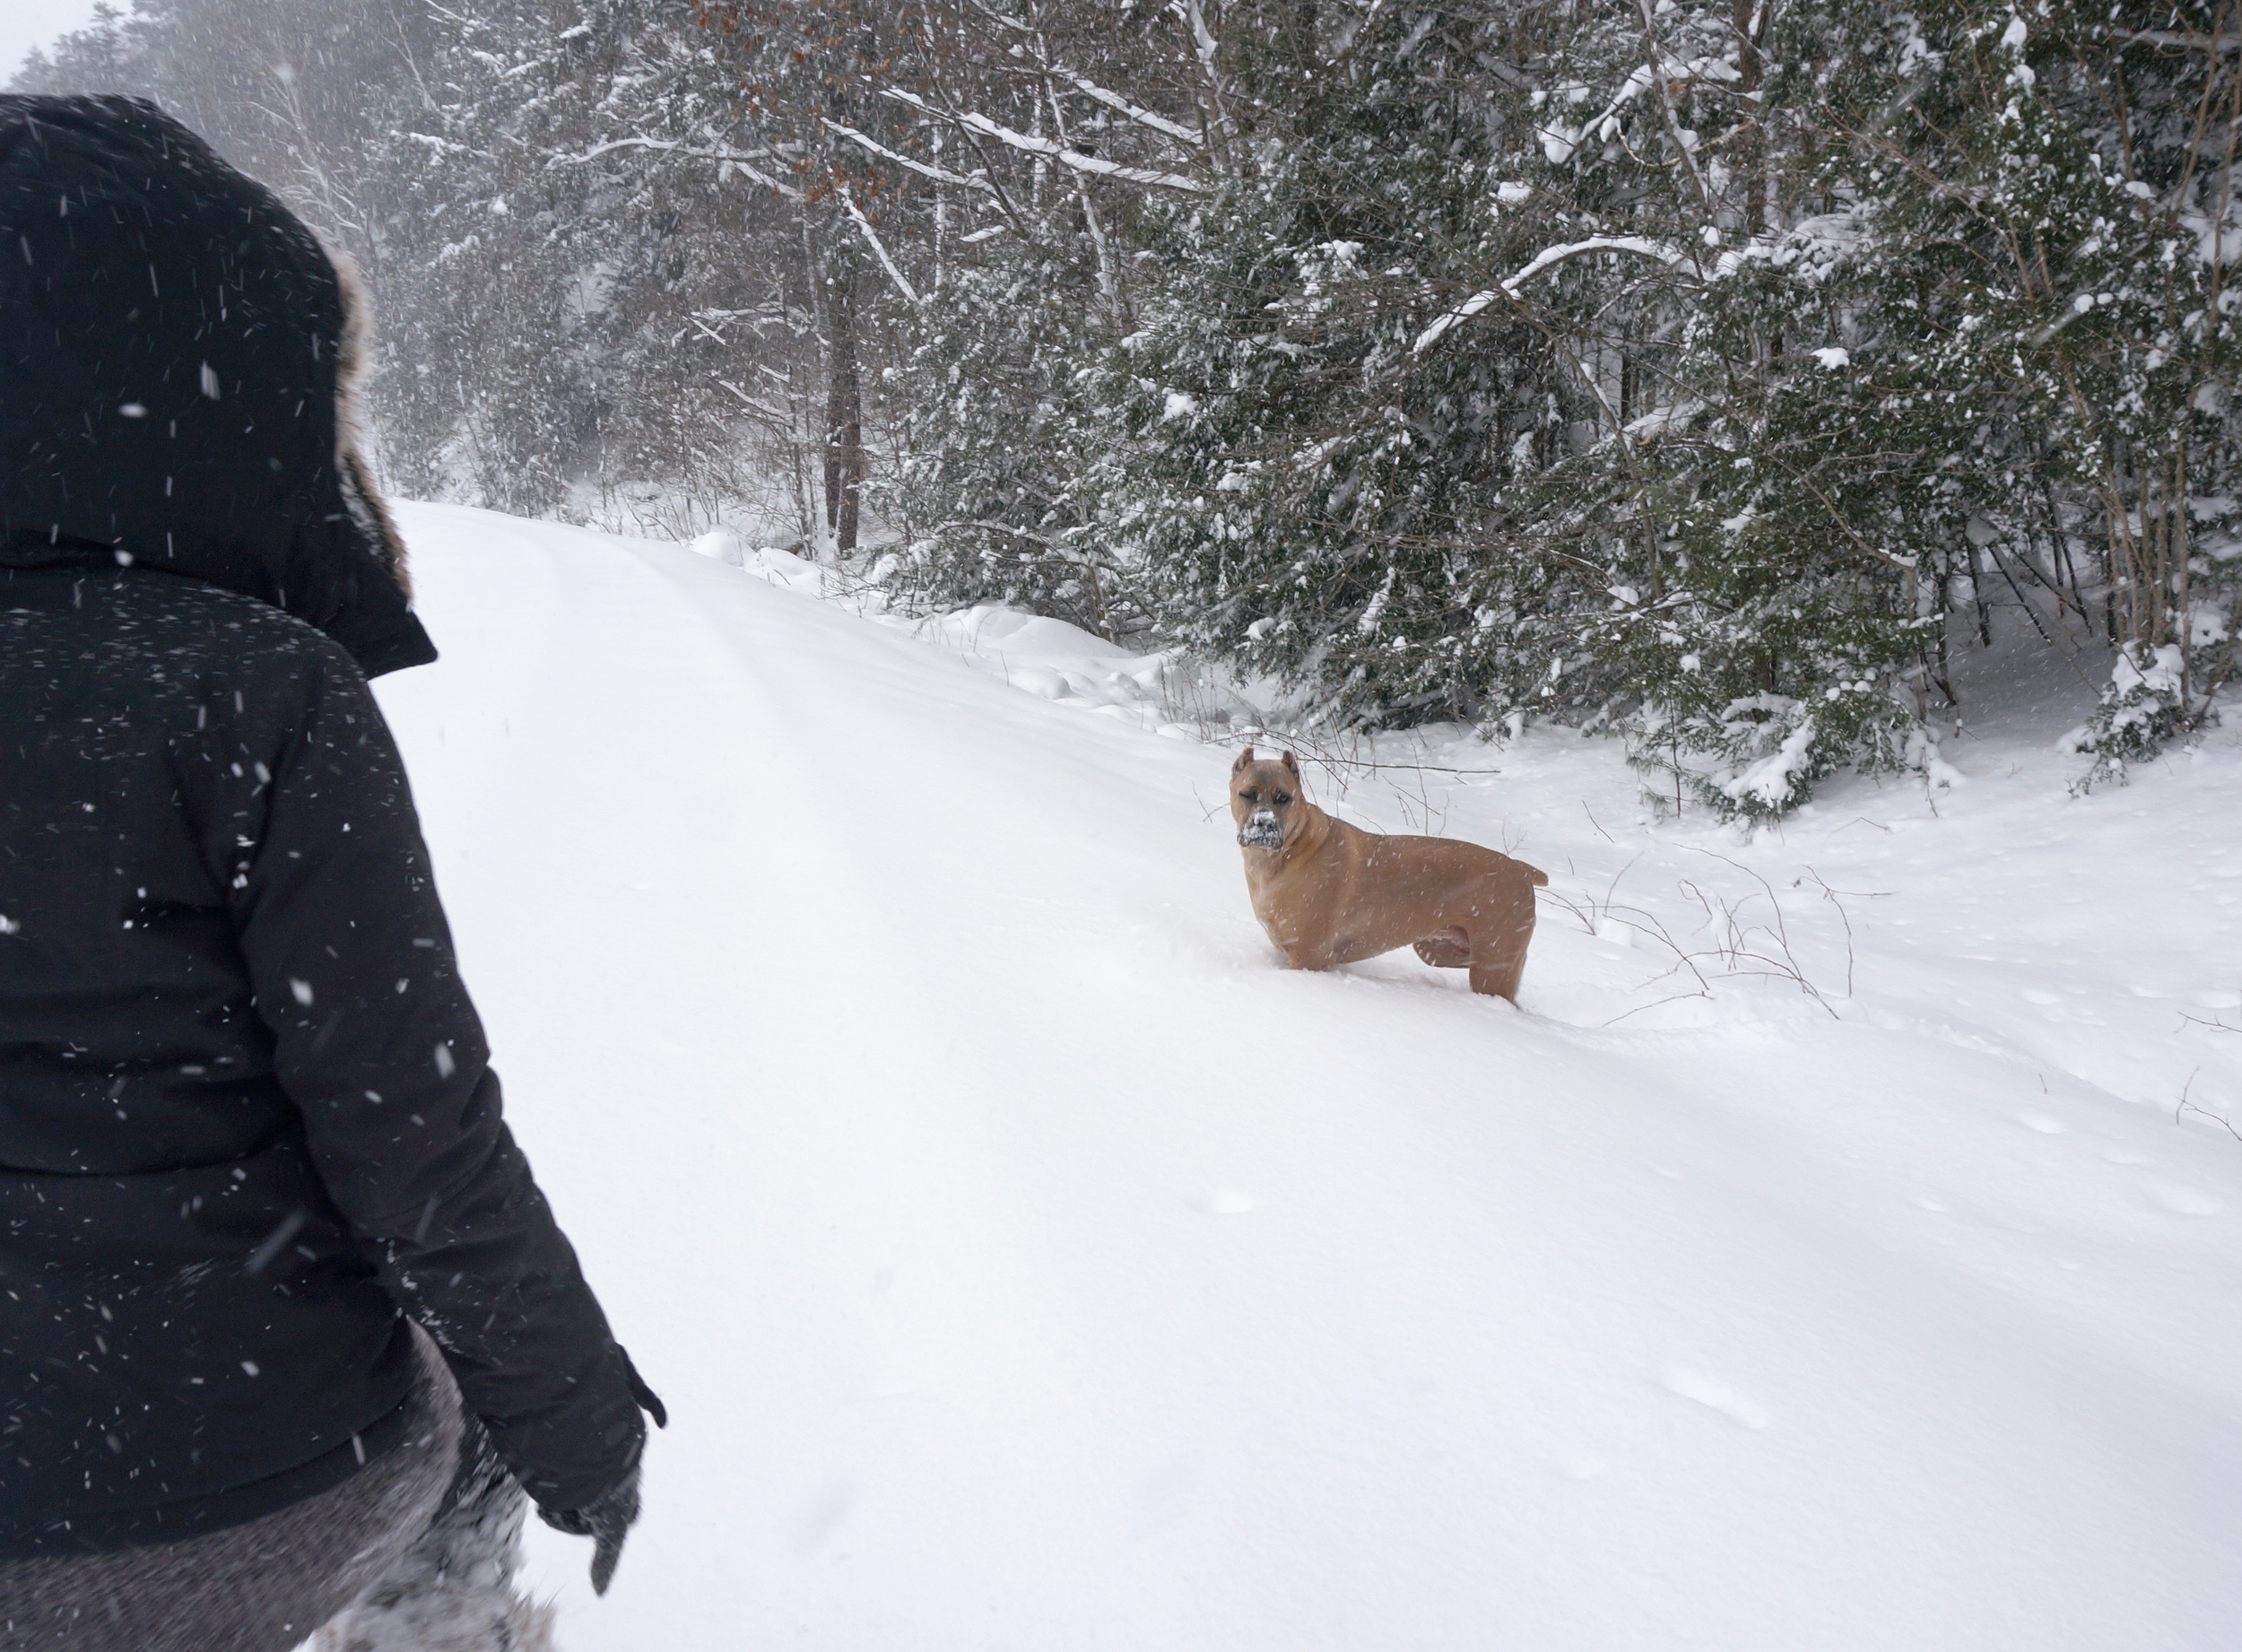 My dog and I in the snow